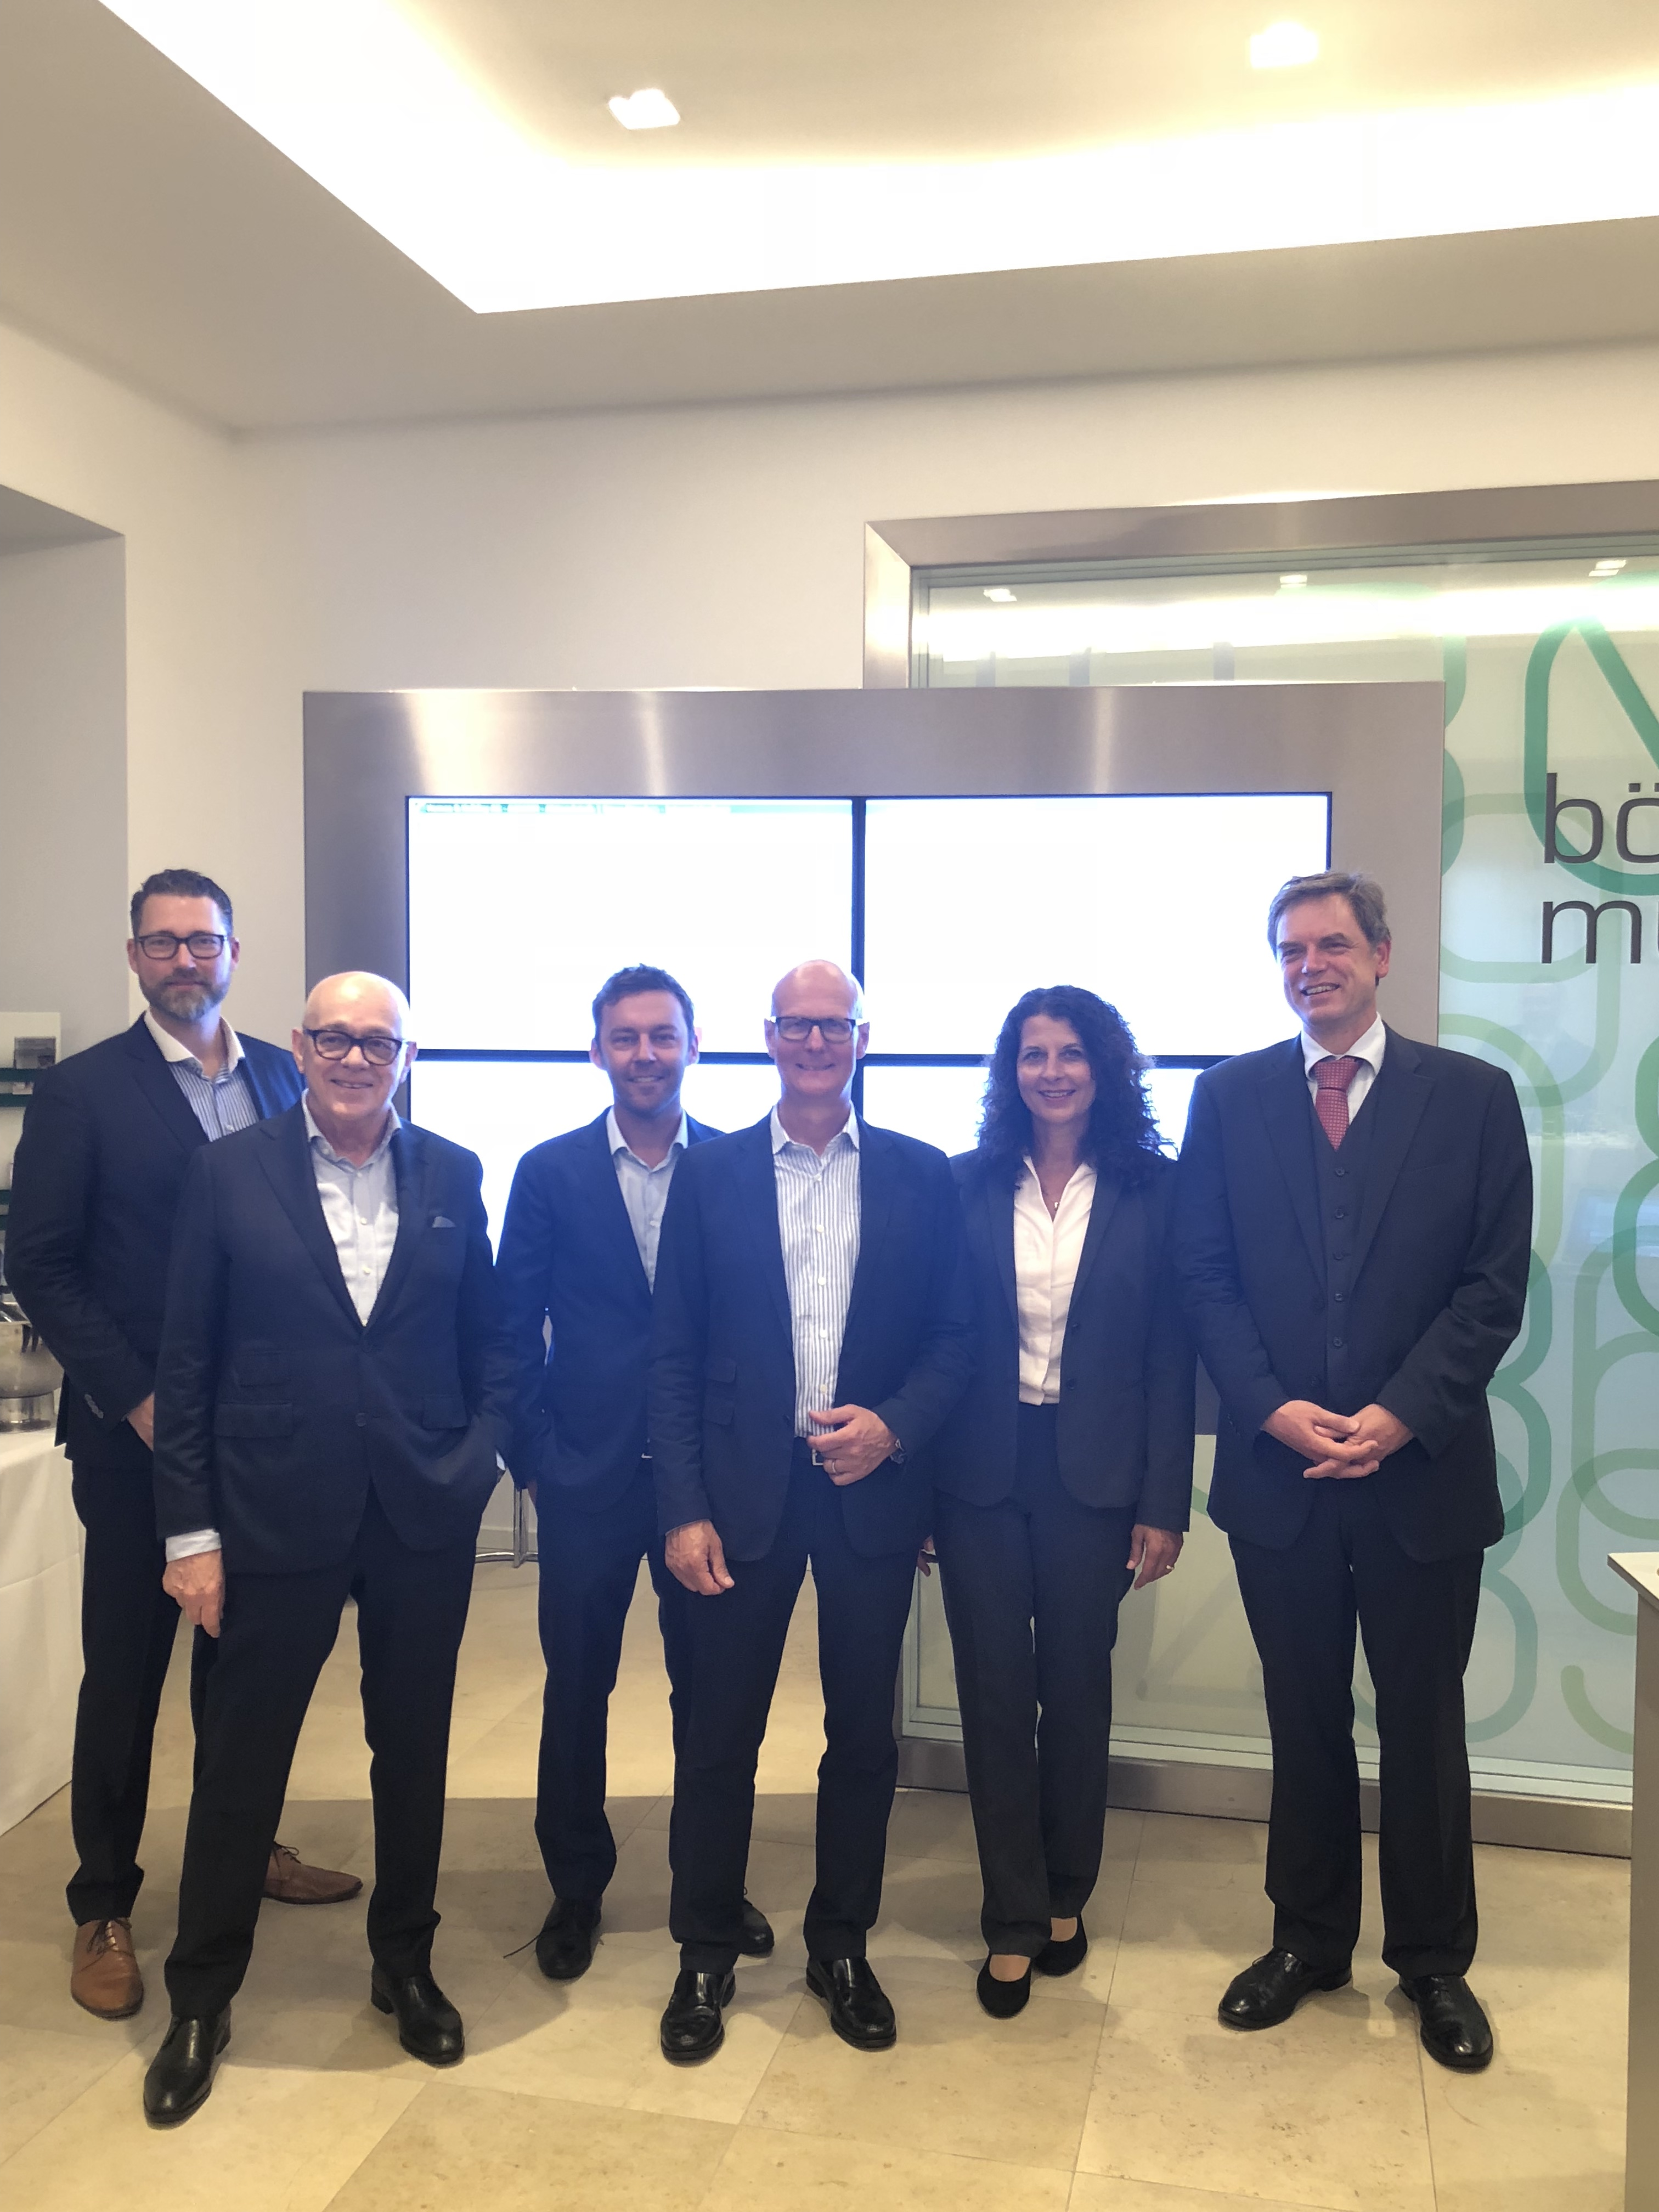 On July 6, 2018, it was time for the Homes & amp; Holiday AG celebrated its premiere on the trading floor. V.l.n.r .: Stephan Bruns, Joachim Semrau, Ralf Spielvogel, Carl-Peter Gerlach, Ulrike Eschenbecher and Philip Kohler.